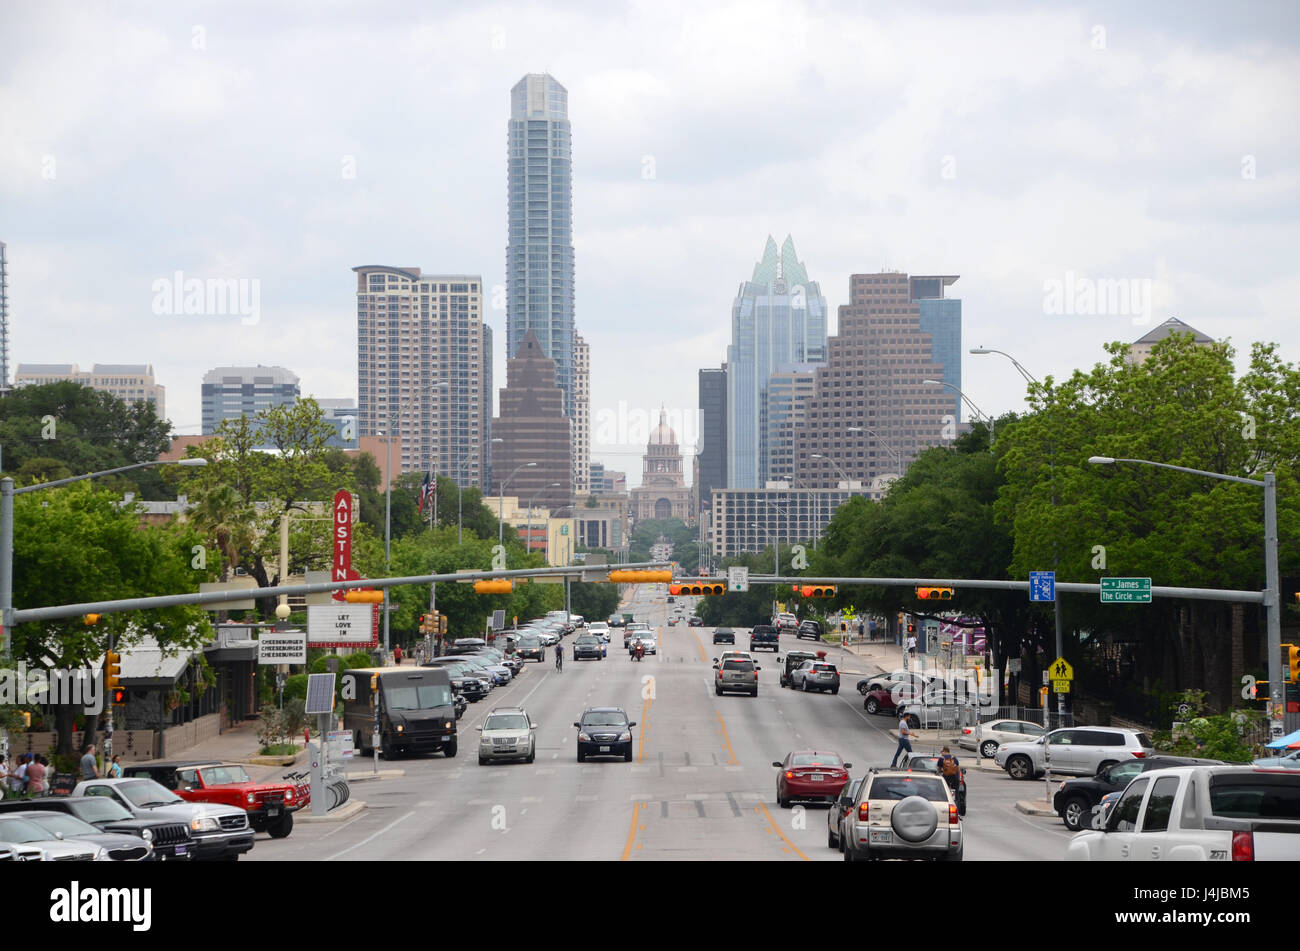 view of austin down south congress avenue - Stock Image